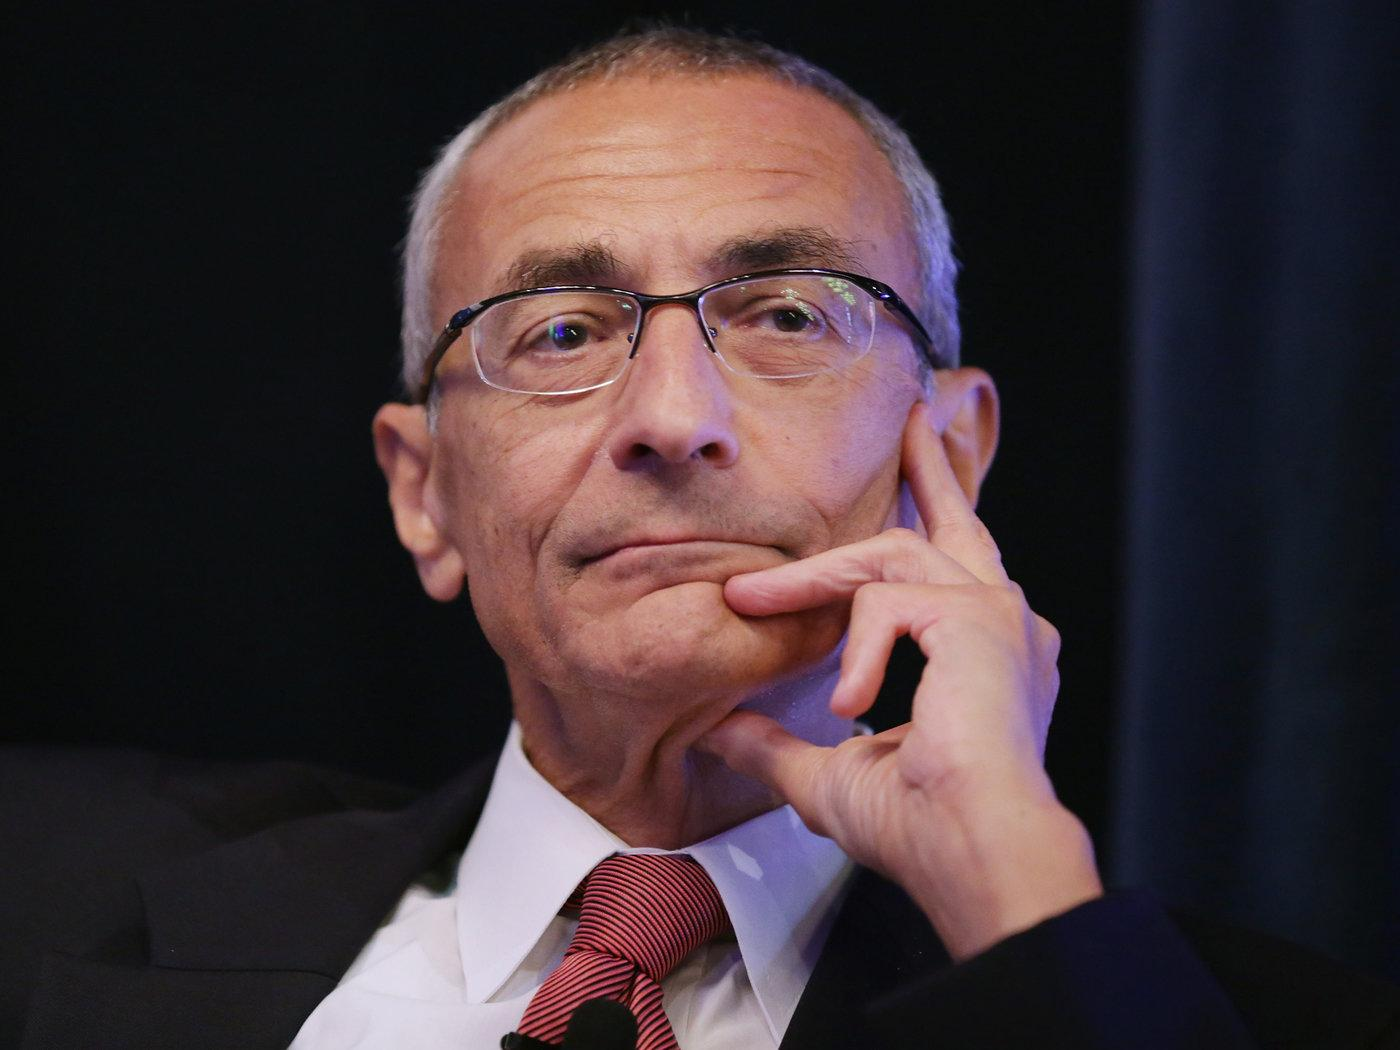 WIKILEAKED EMAILS: Clinton's campaign chairman, John Podesta, assumes a look of resignation.